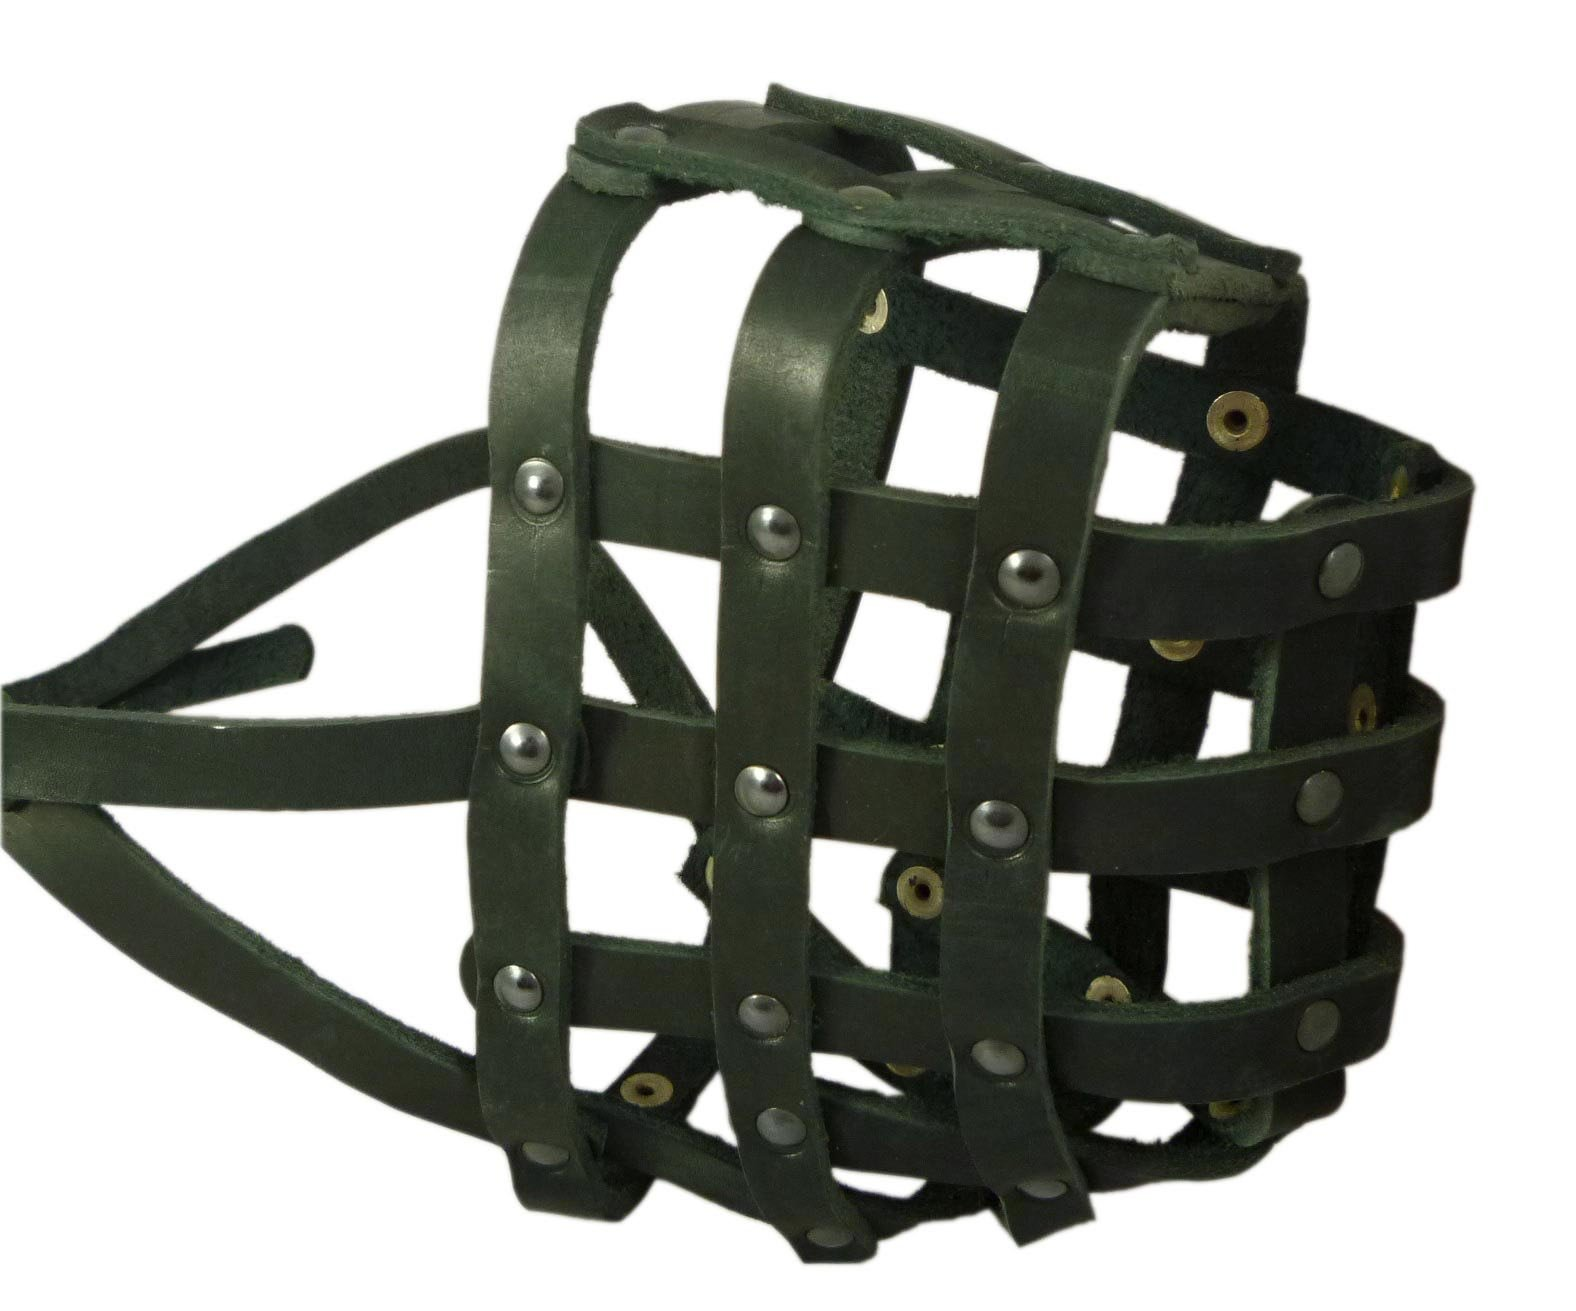 Real Leather Dog Basket Muzzle #115 Black (Circumference 18'', Snout Length 4.7'') Mastiff, Great Dane by Dogs My Love